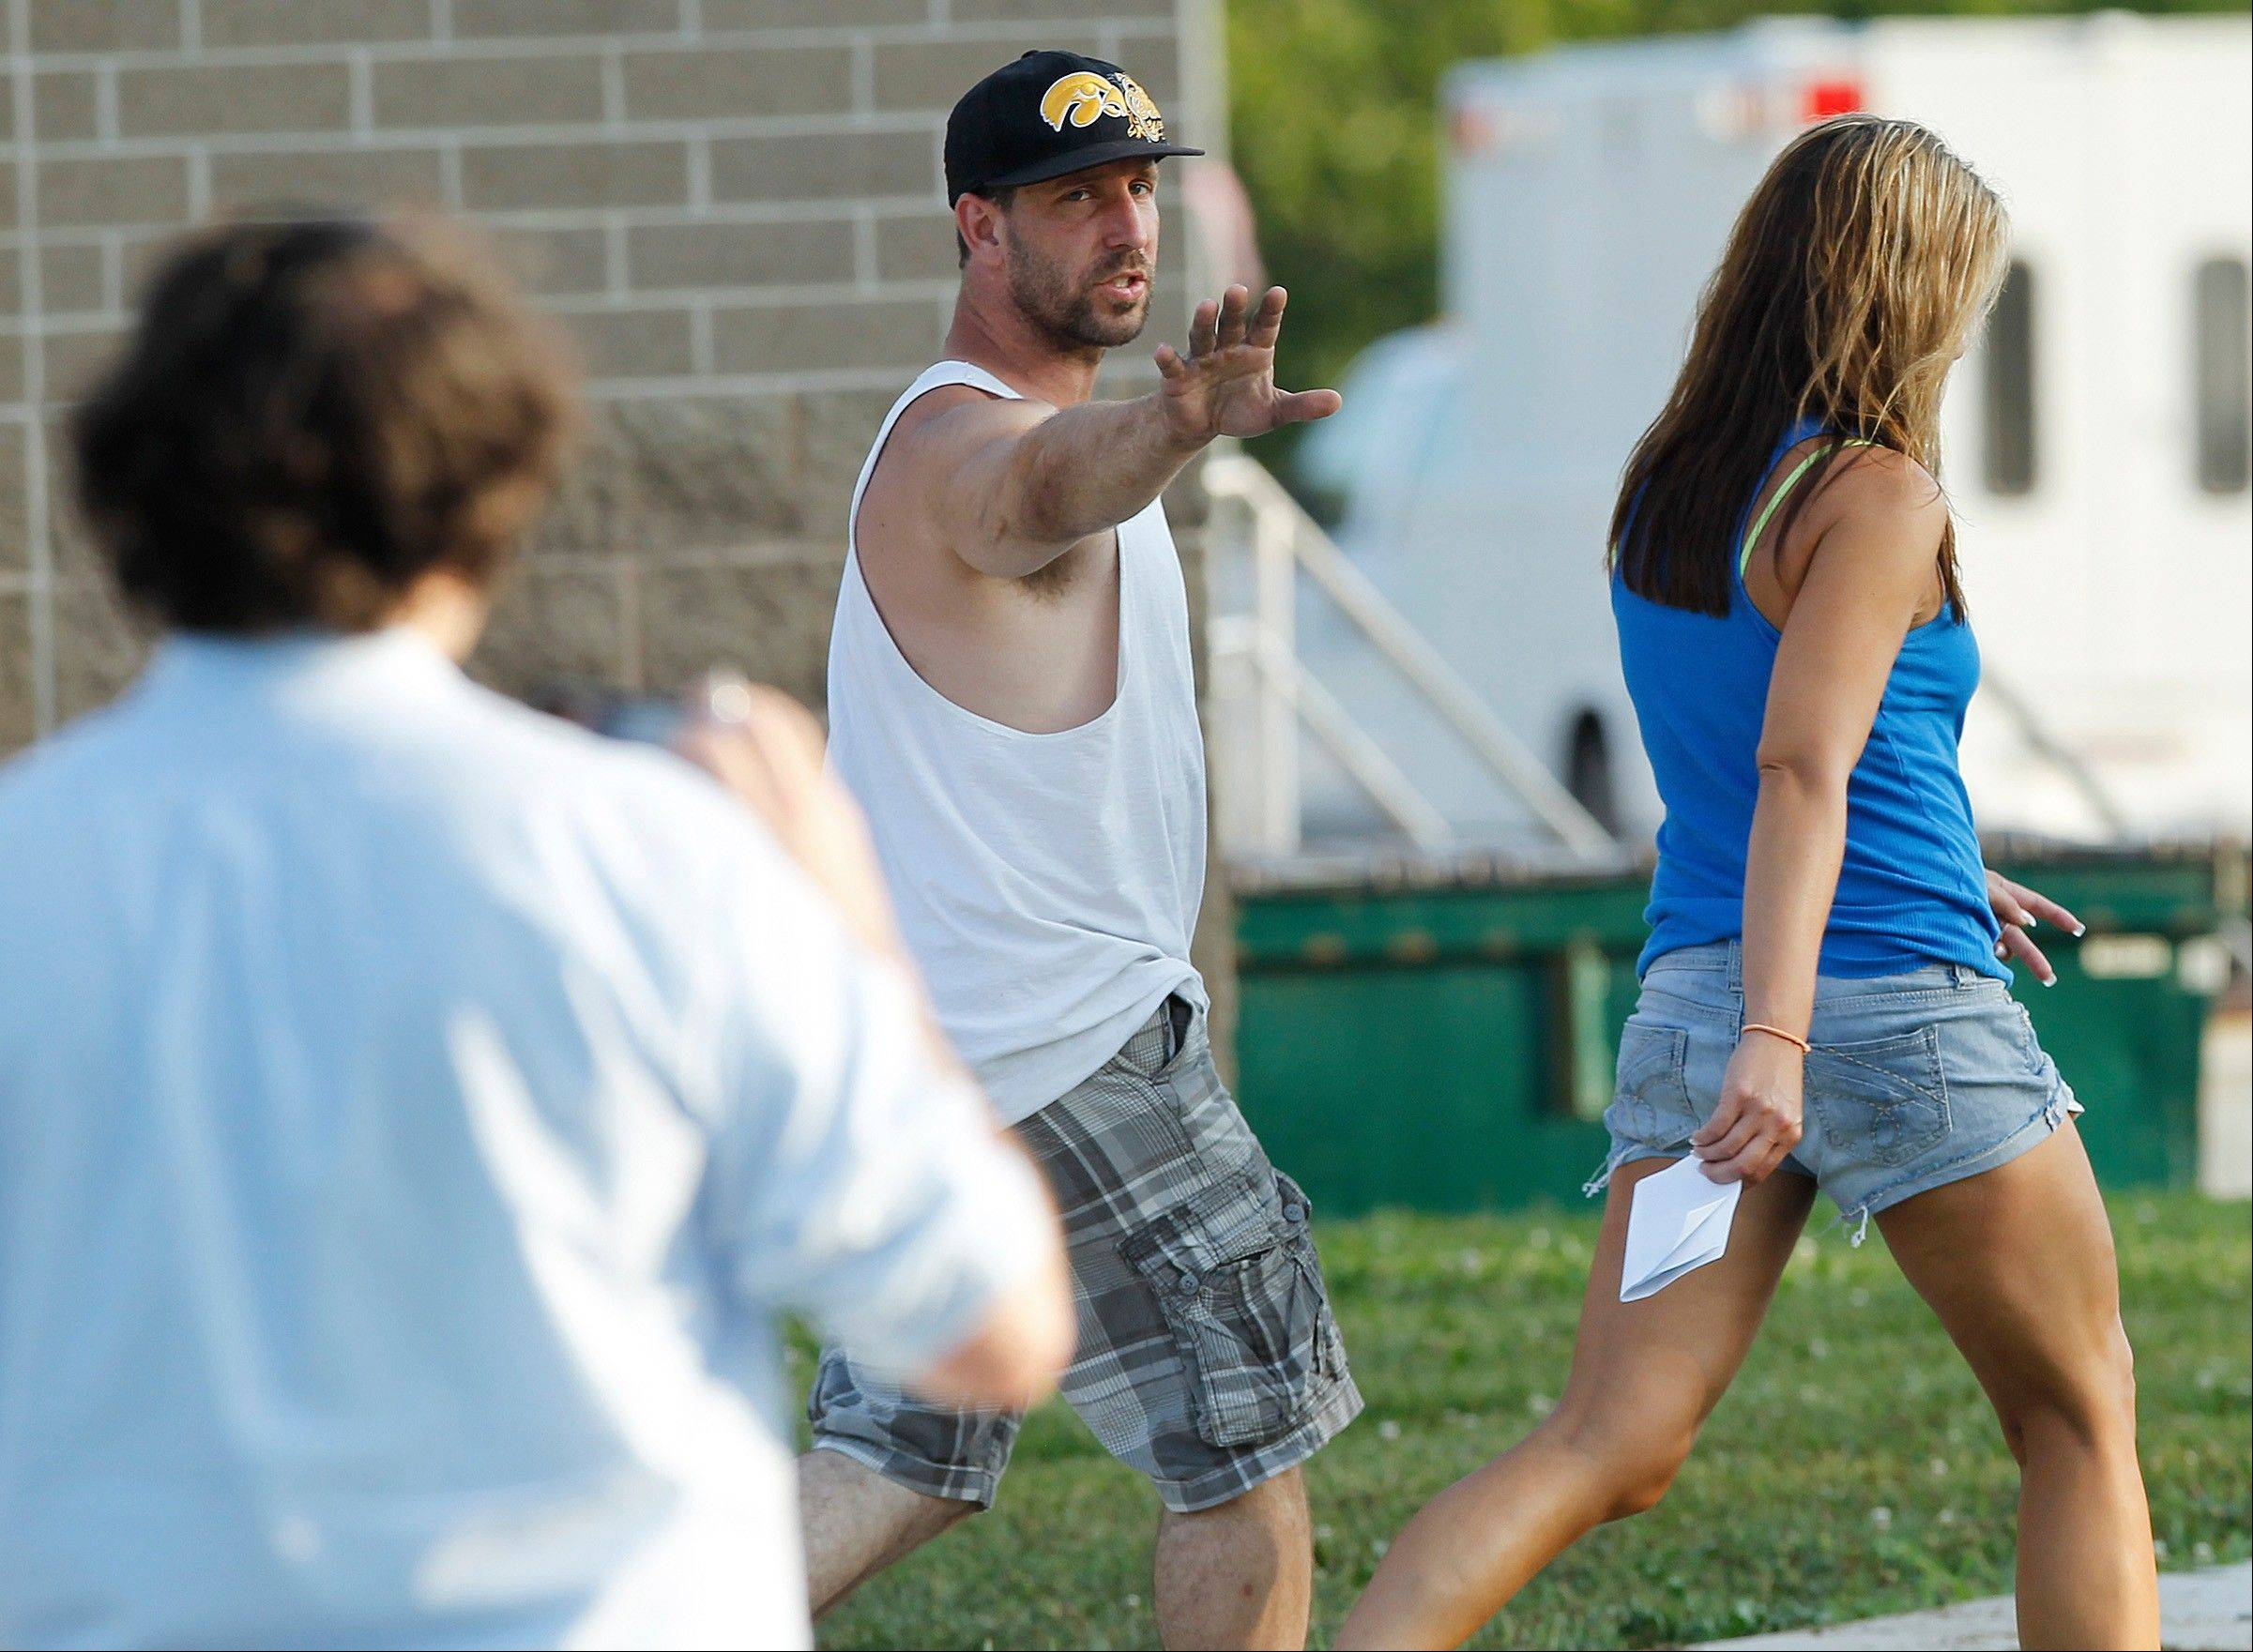 Dan and Misty Morrissey wave off the media as they walk out of the command center Thursday in Evansdale, Iowa.